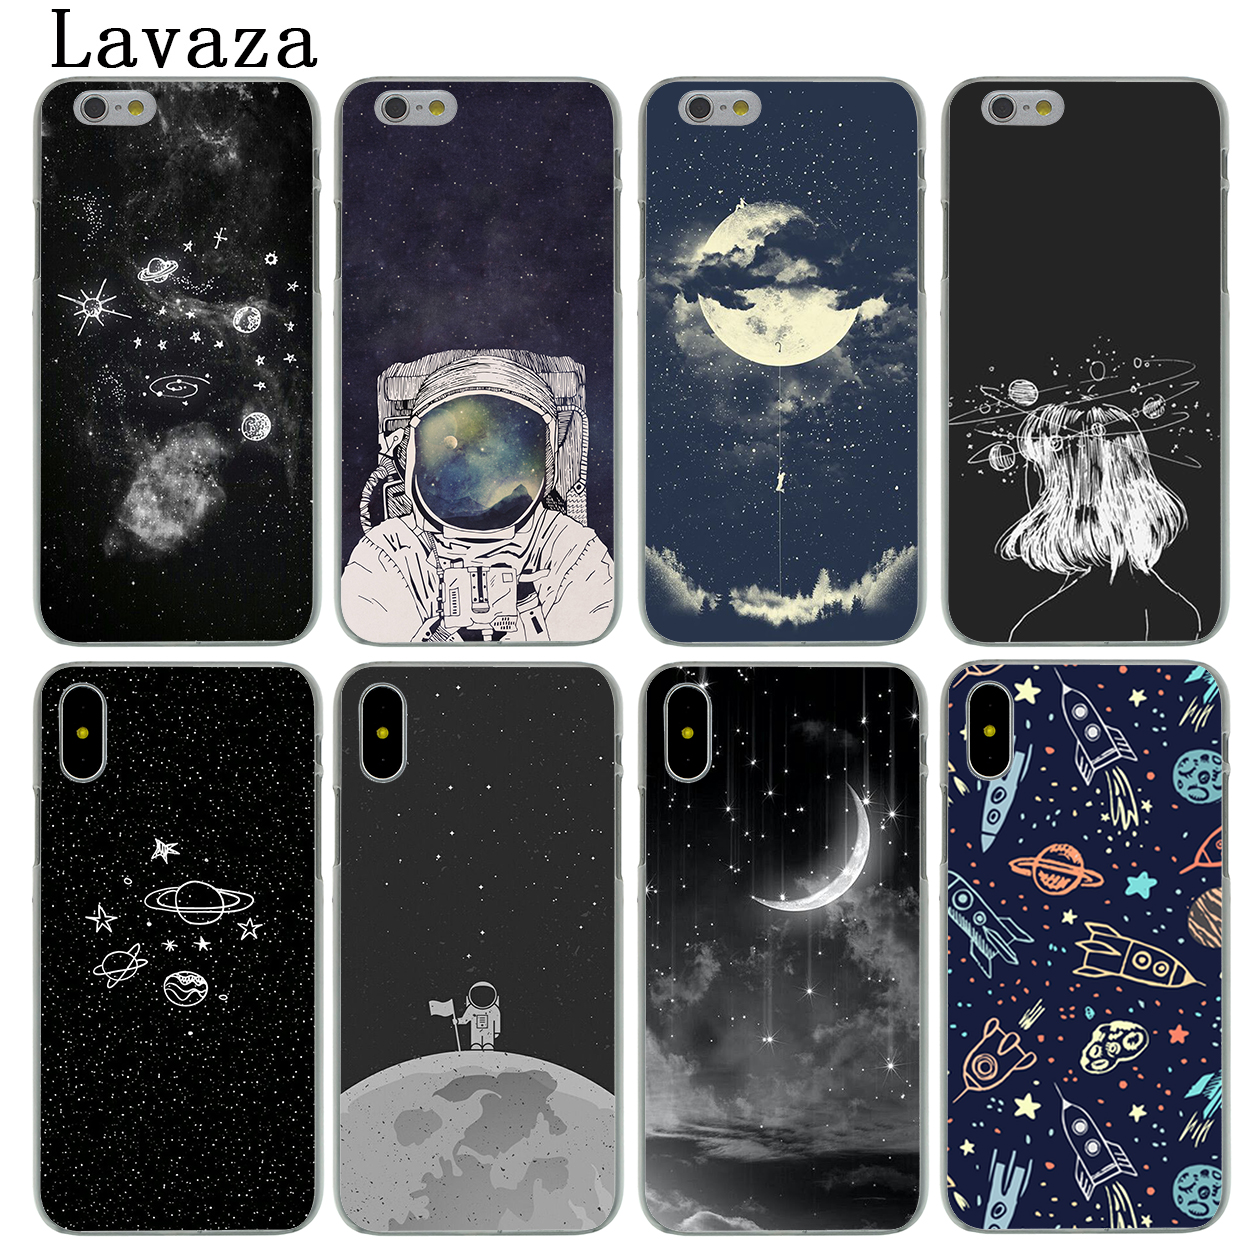 Lavaza Space Love Sun And Moon Star Drawing Hard Phone Case For Apple IPhone X XS Max XR 6 6S 7